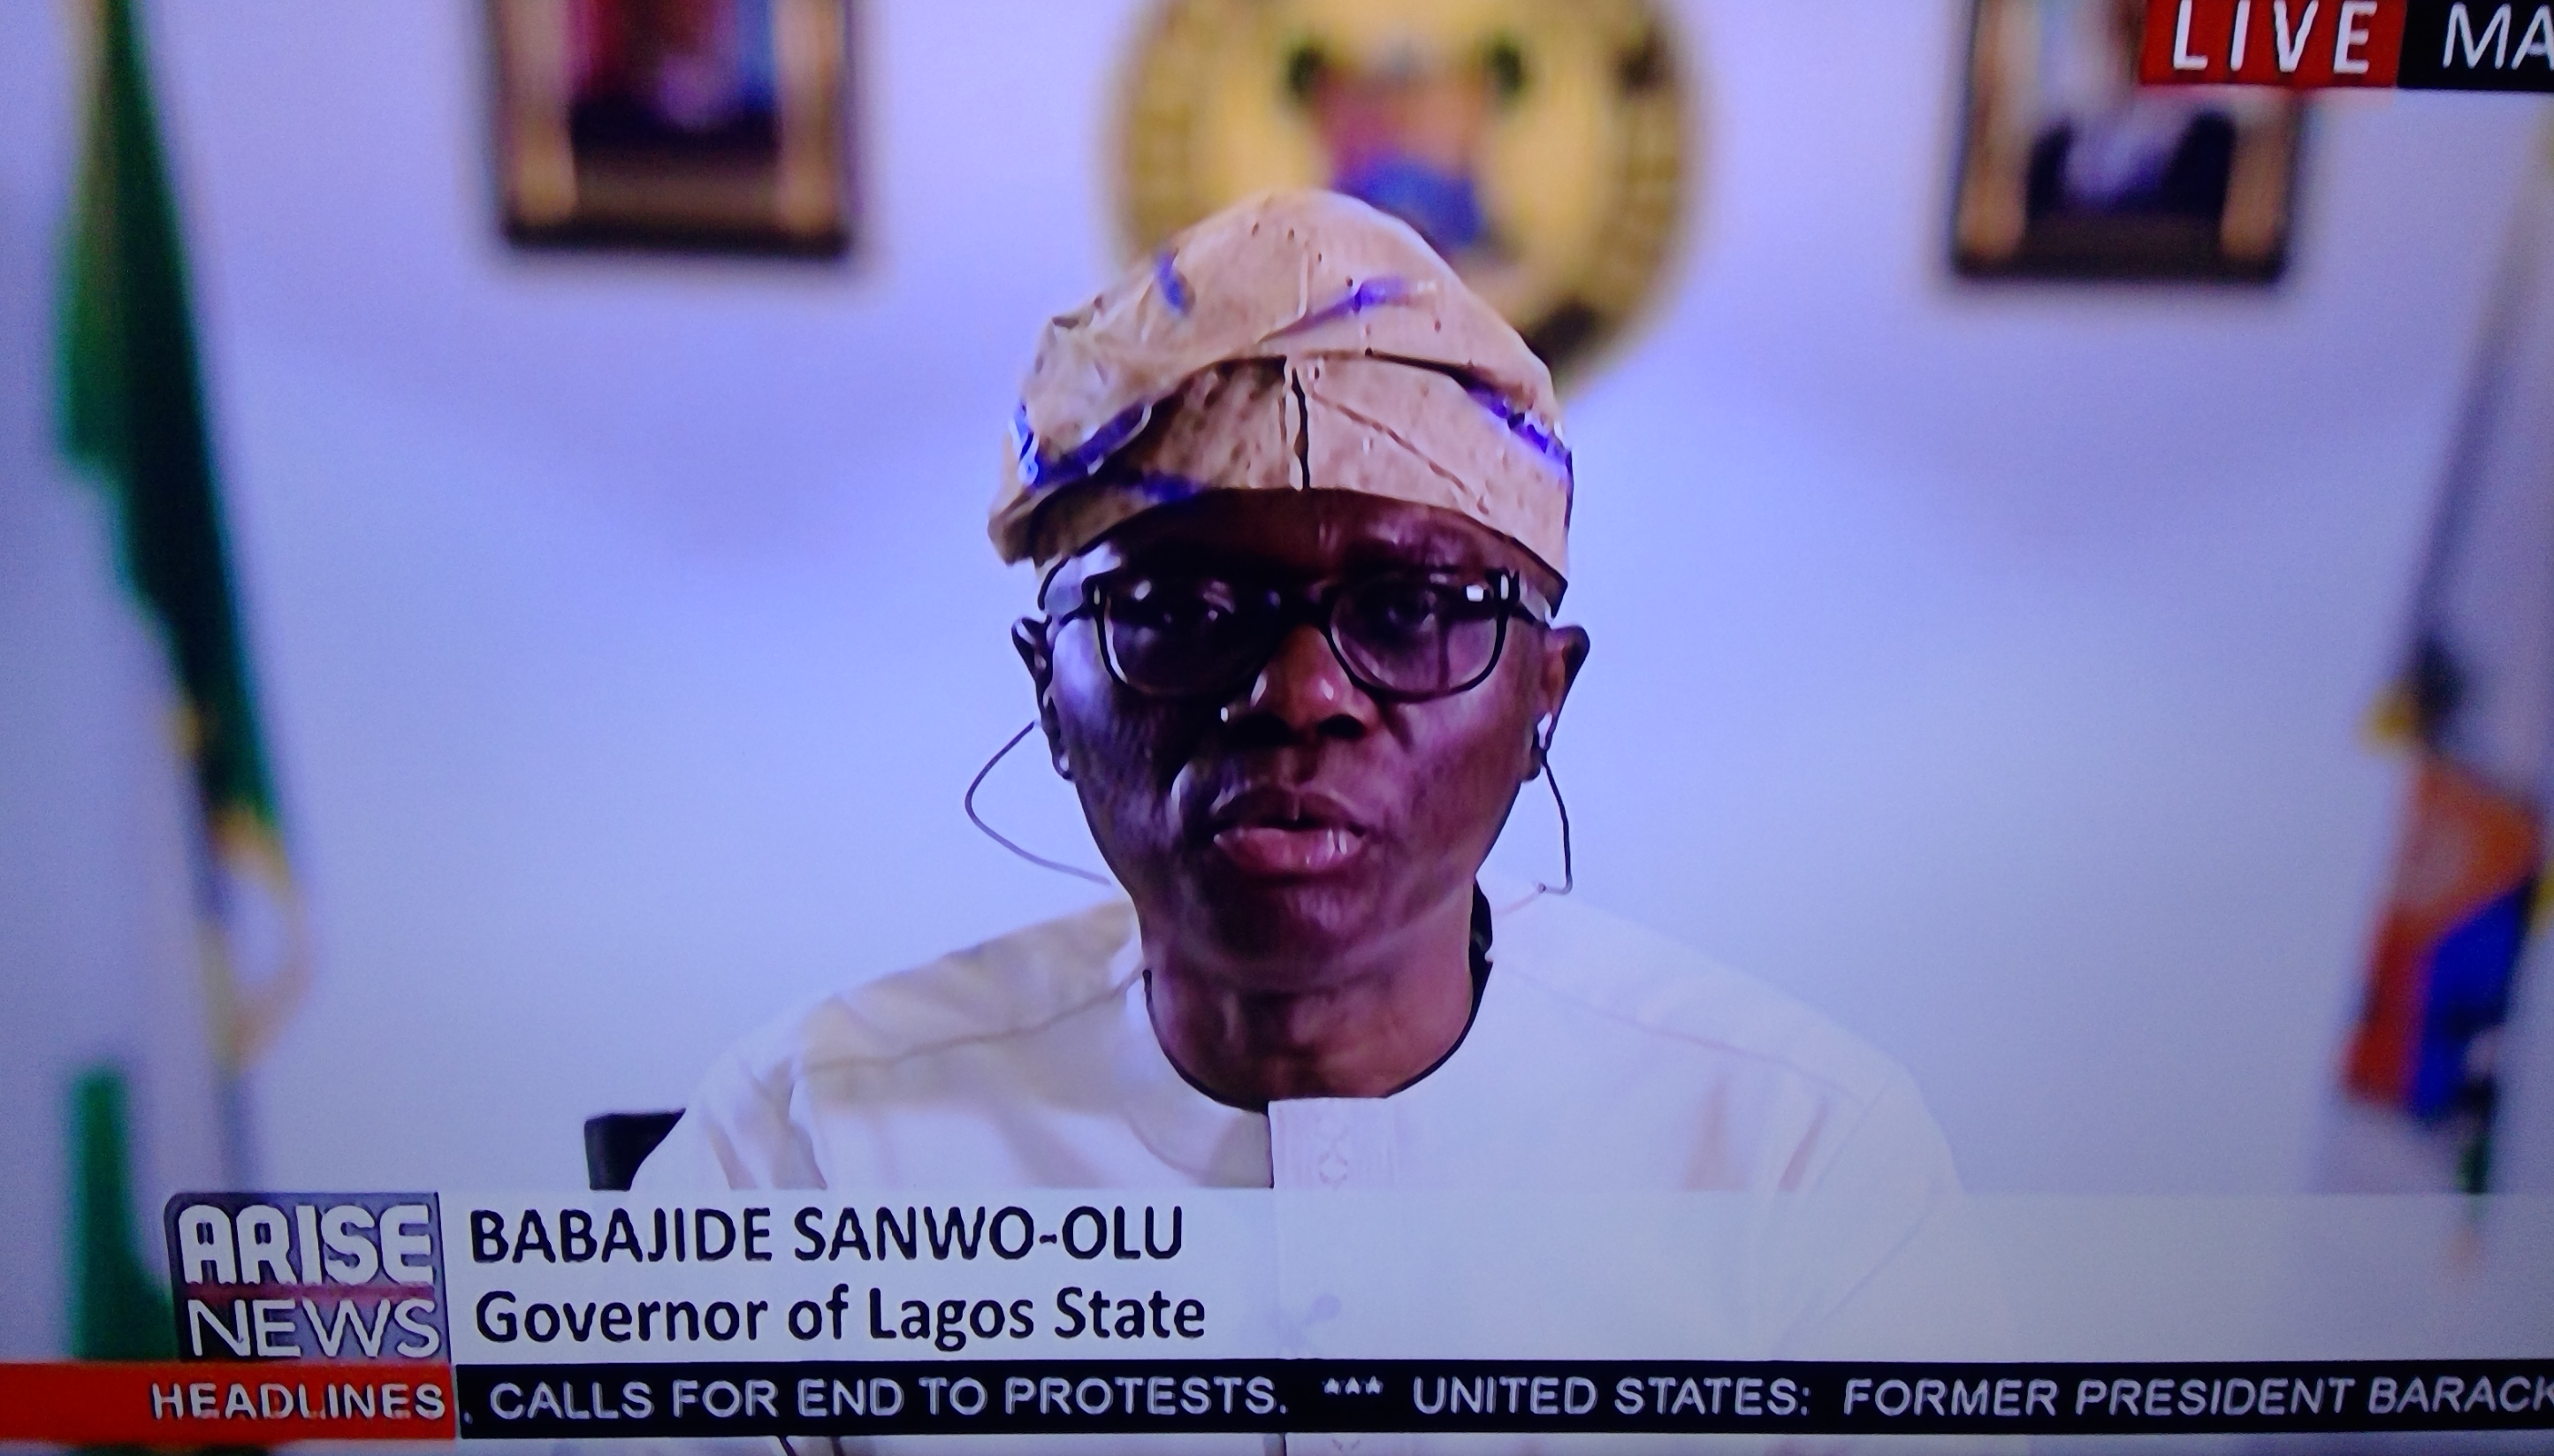 Sanwoolu says curfew may be partially lifted